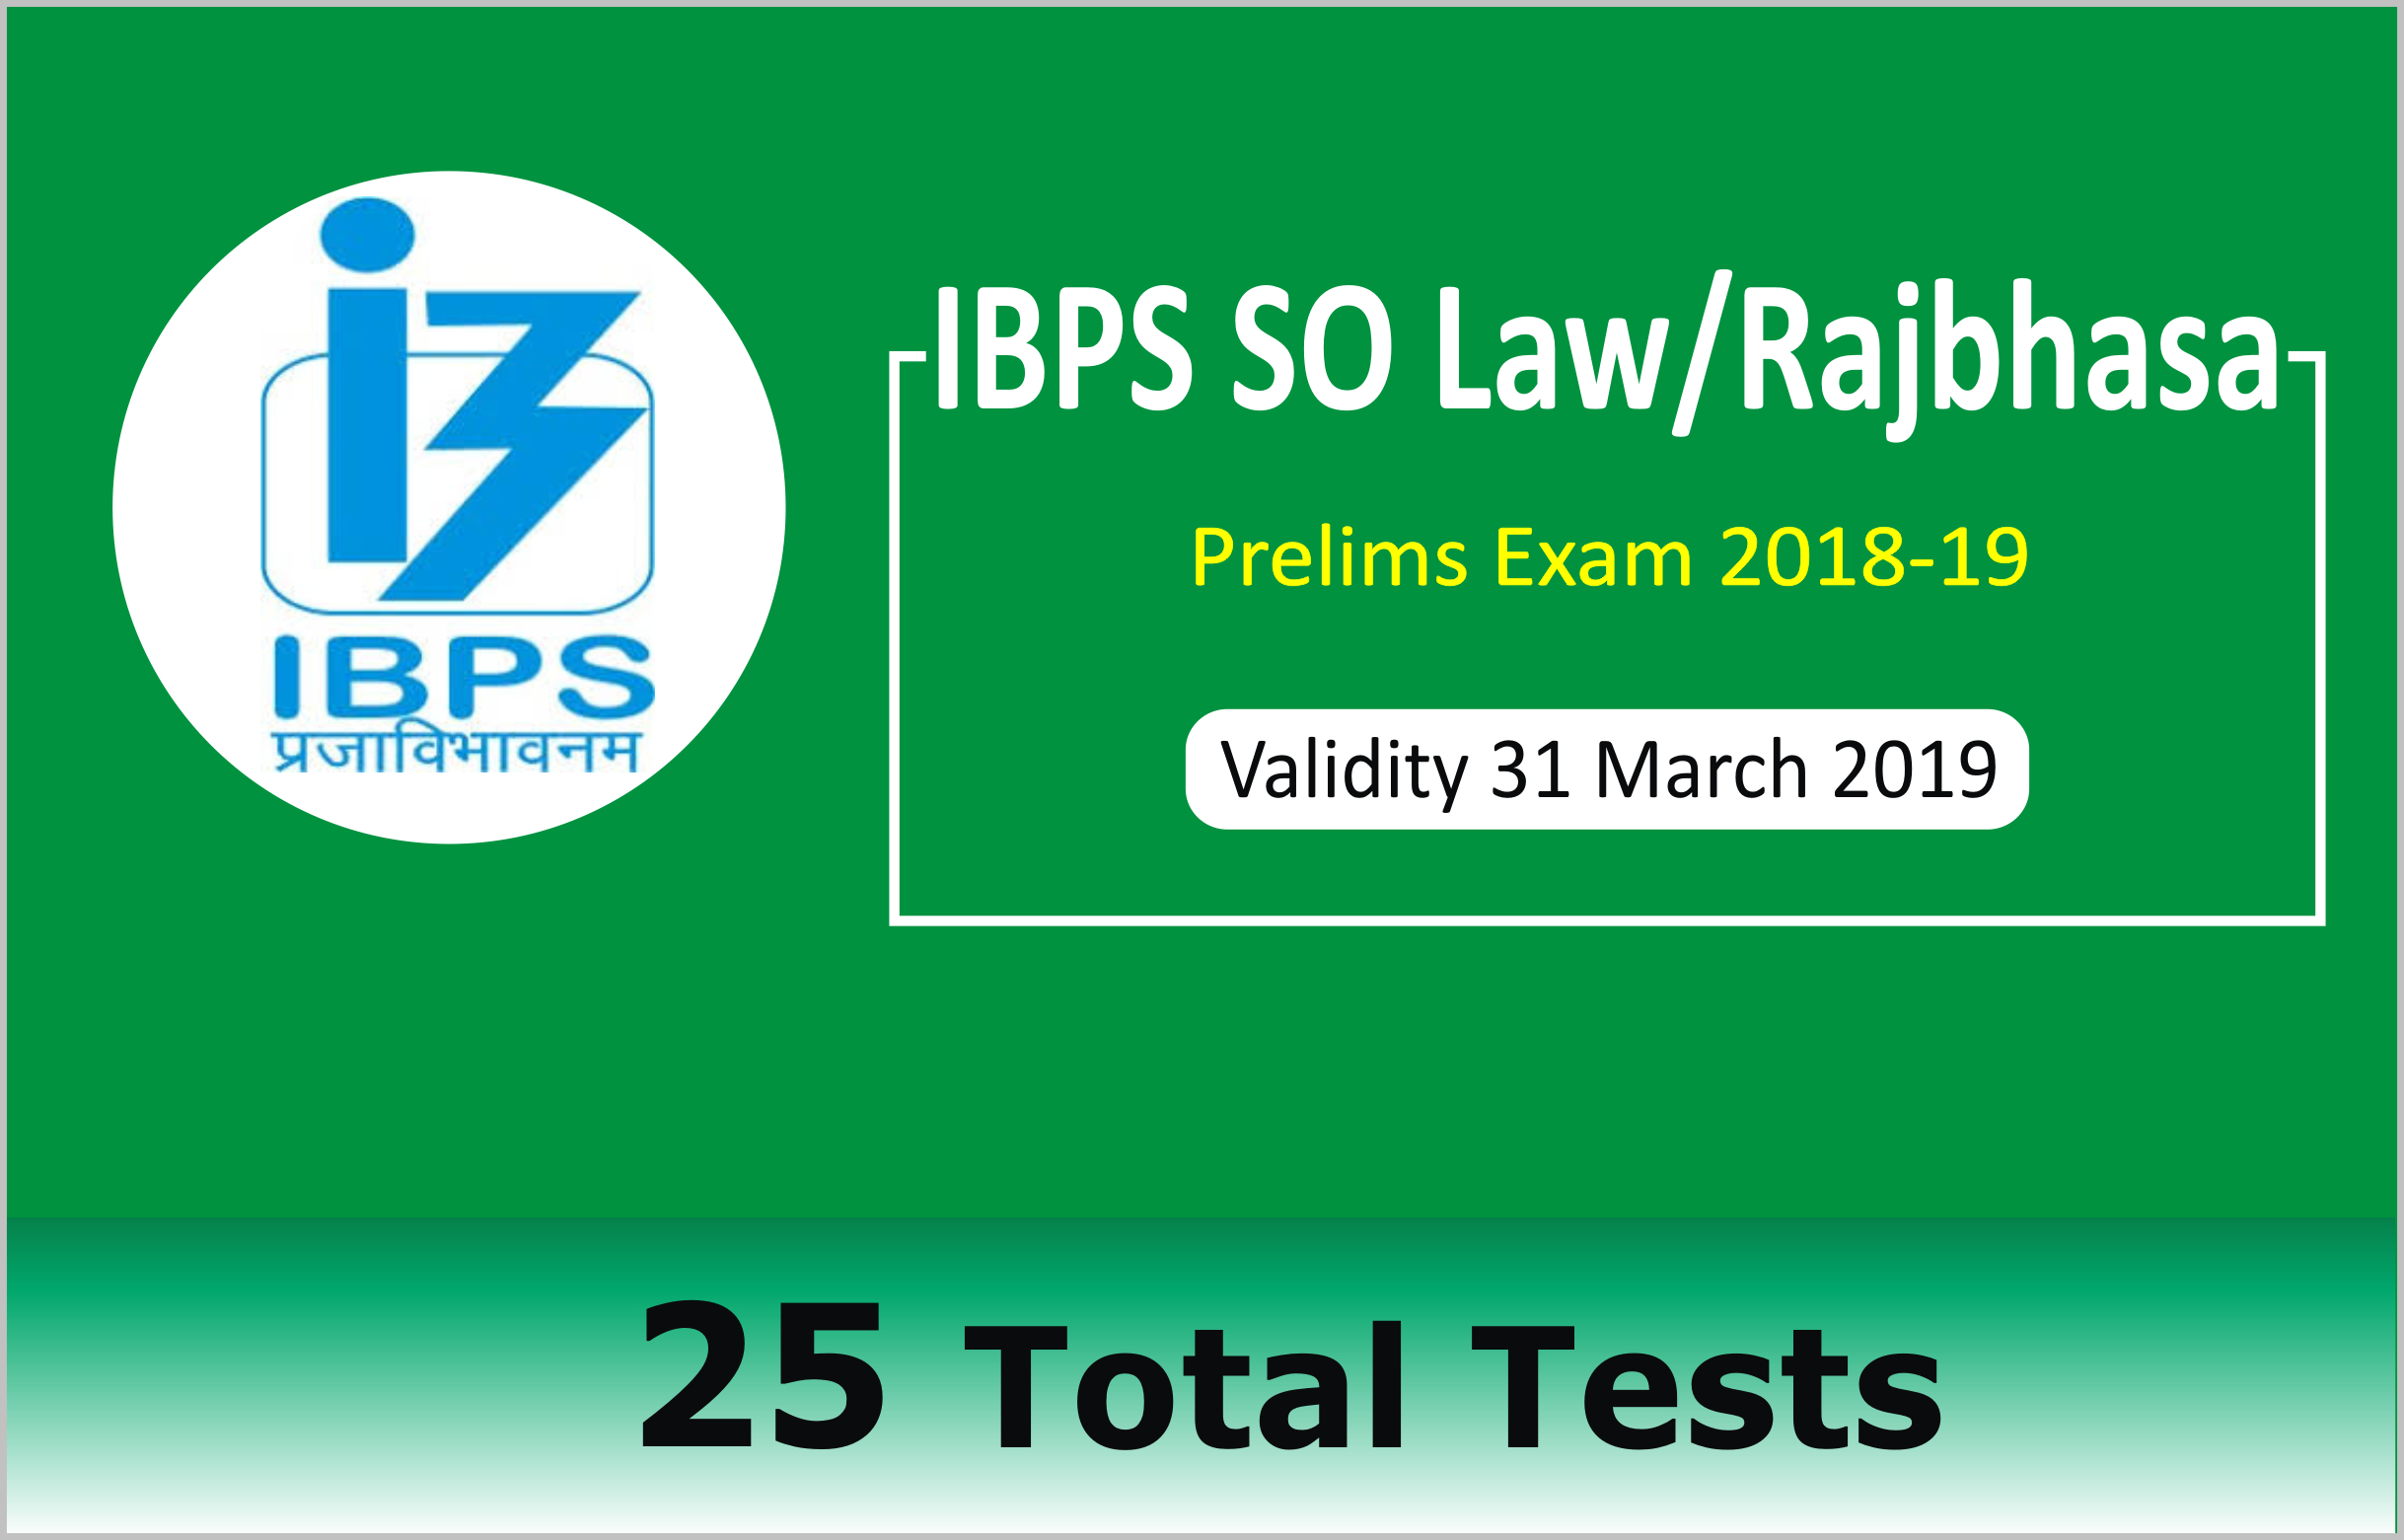 IBPS SO 2018-19 LAW/RAJBHASHA